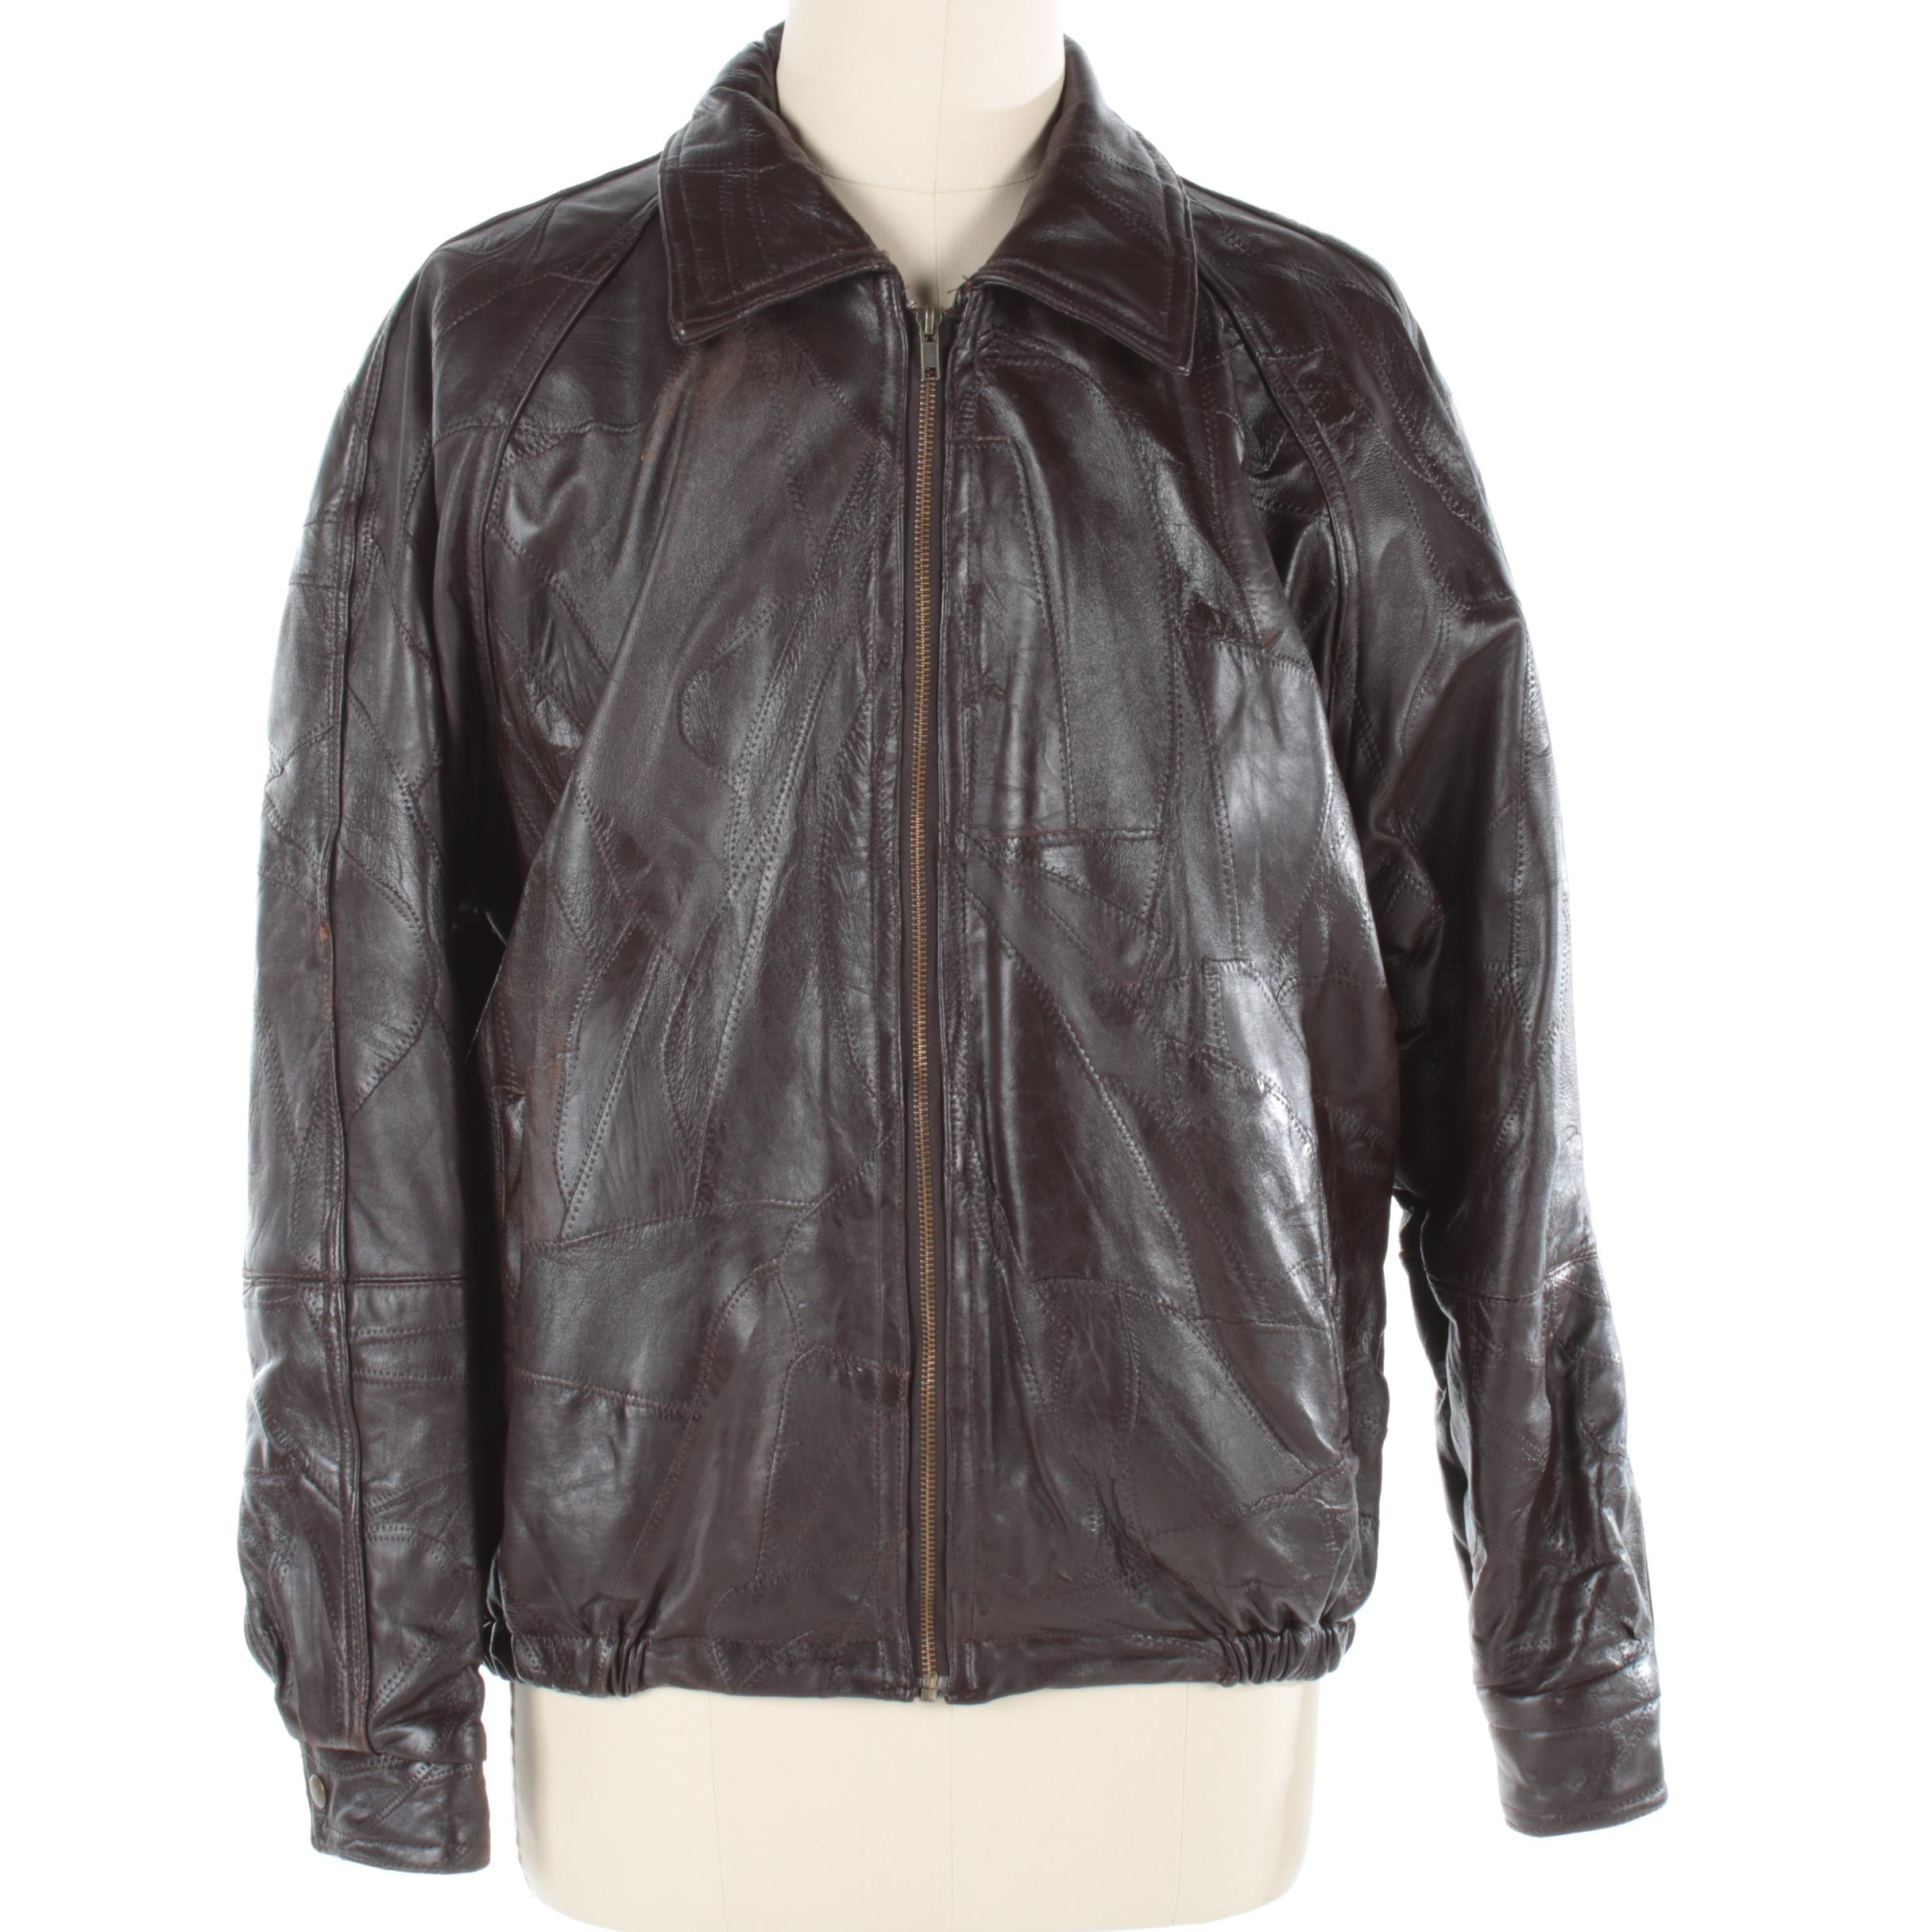 Men's Haband Brown Leather Jacket